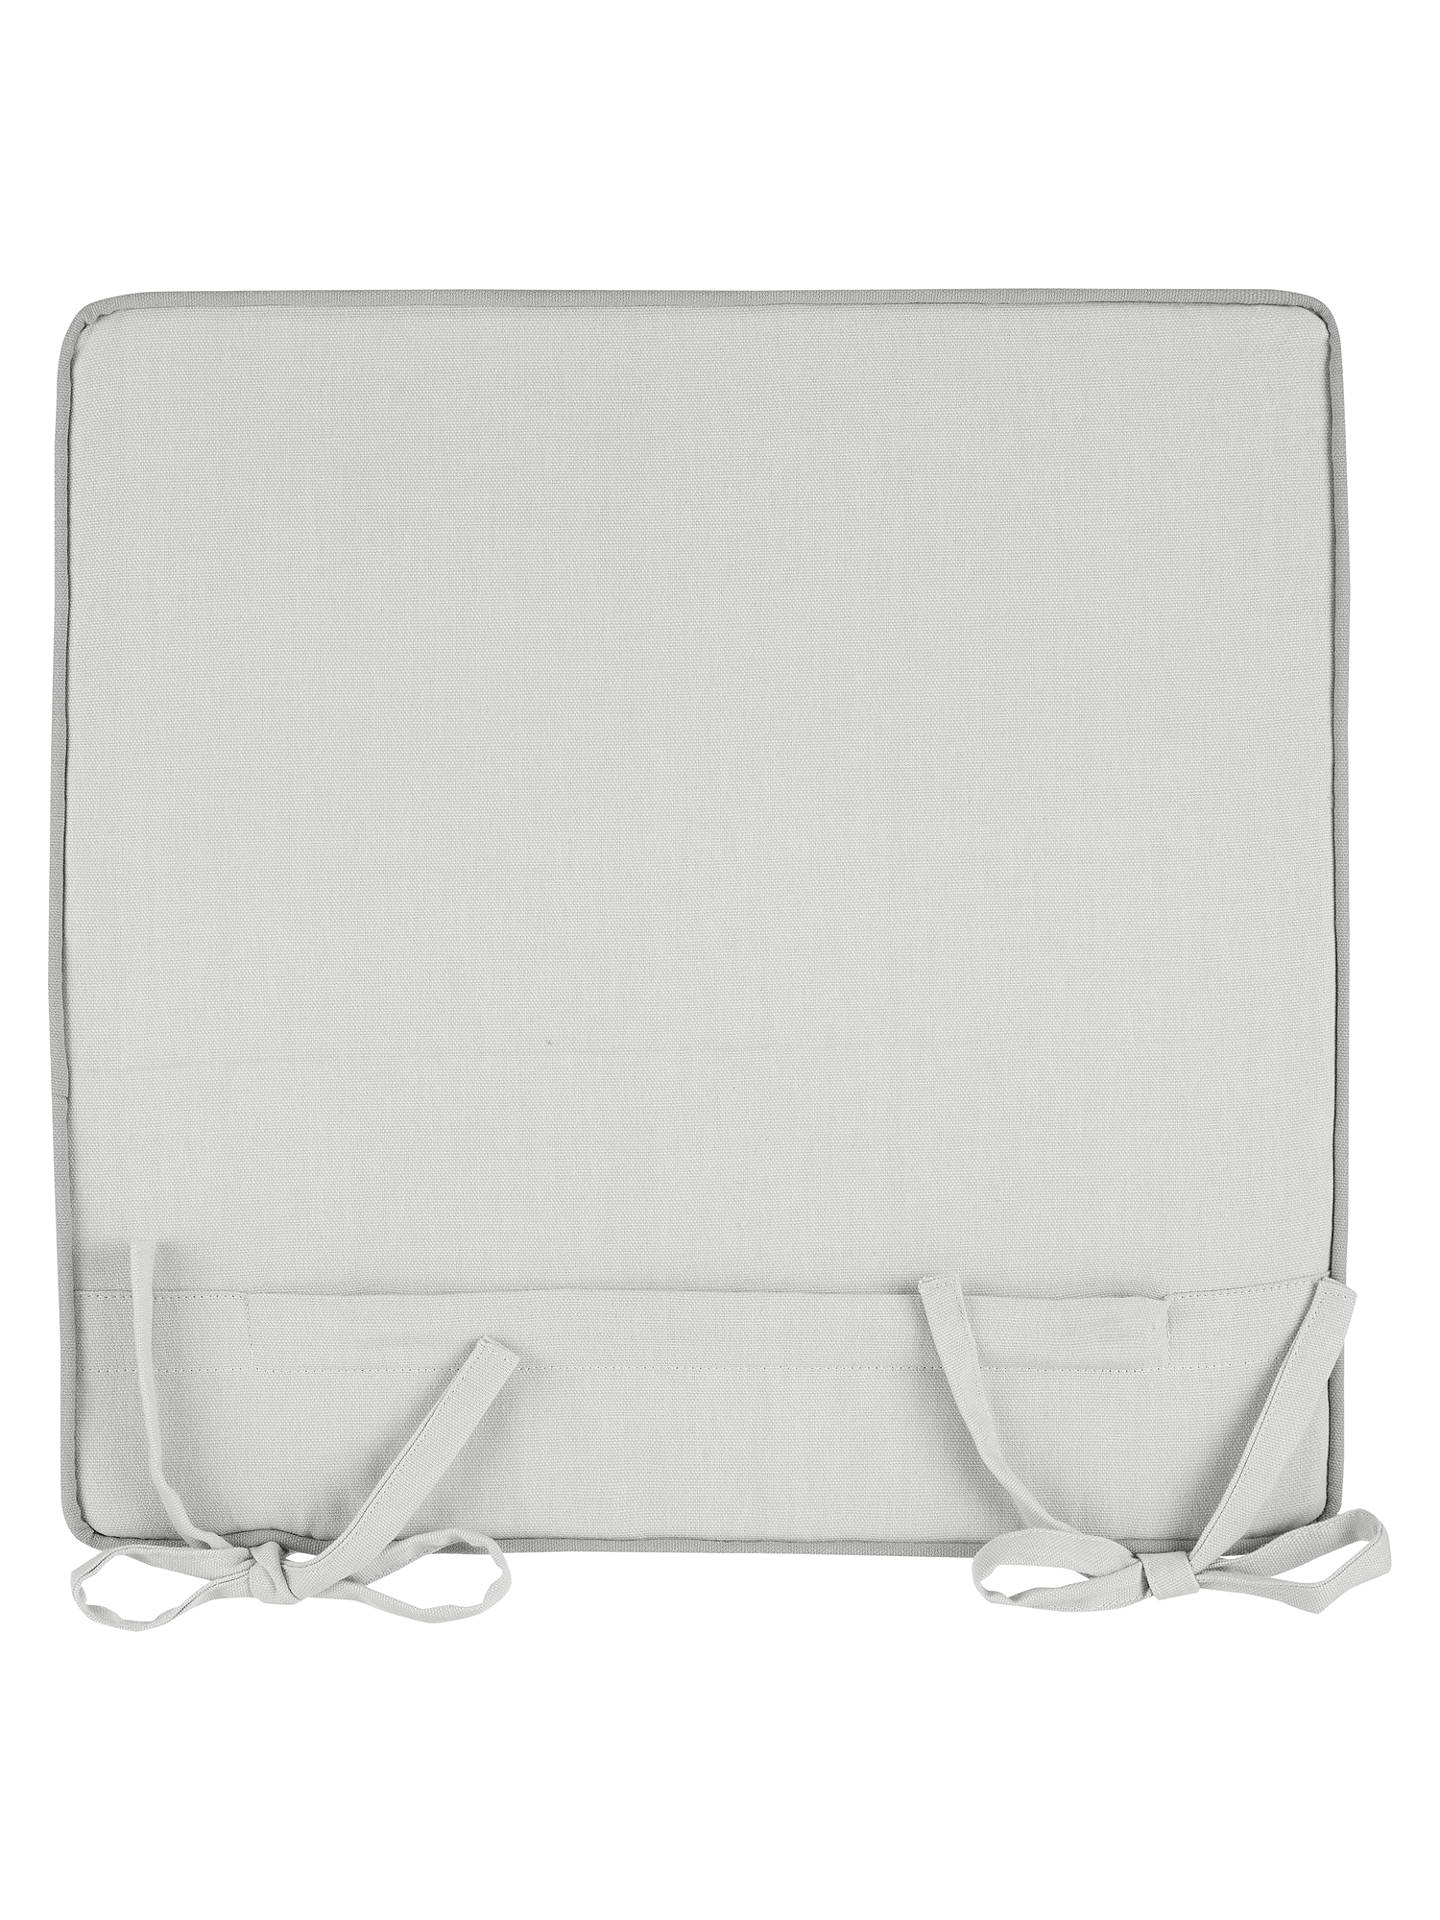 Buy John Lewis & Partners Mix 'N' Match Plain Outdoor Seat Pad Cushion, Putty, Set of 2 Online at johnlewis.com